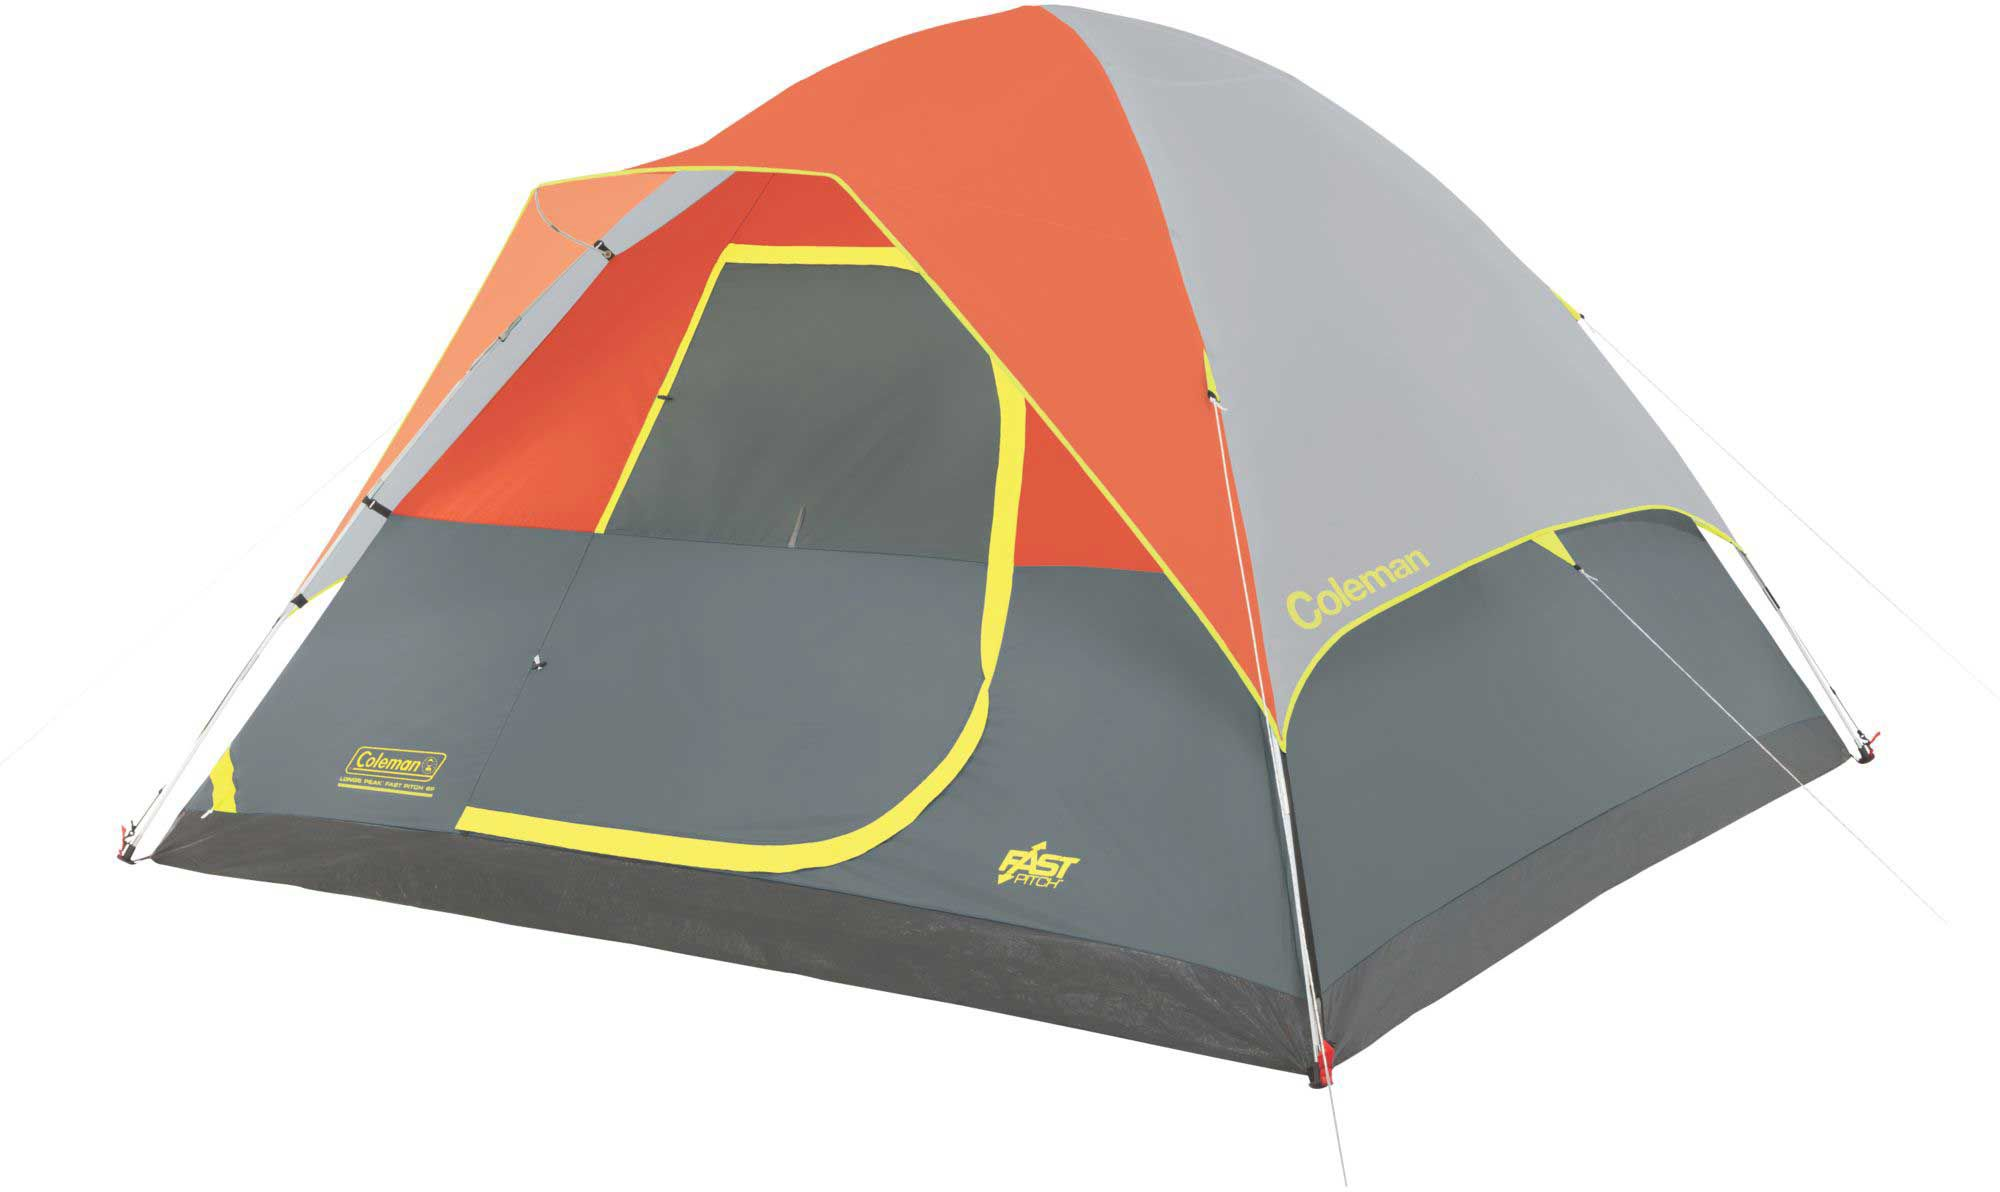 Product Image · Coleman River Gorge Fast Pitch 4 Person Tent  sc 1 st  DICKu0027S Sporting Goods & 4-5 Person Tents | DICKu0027S Sporting Goods